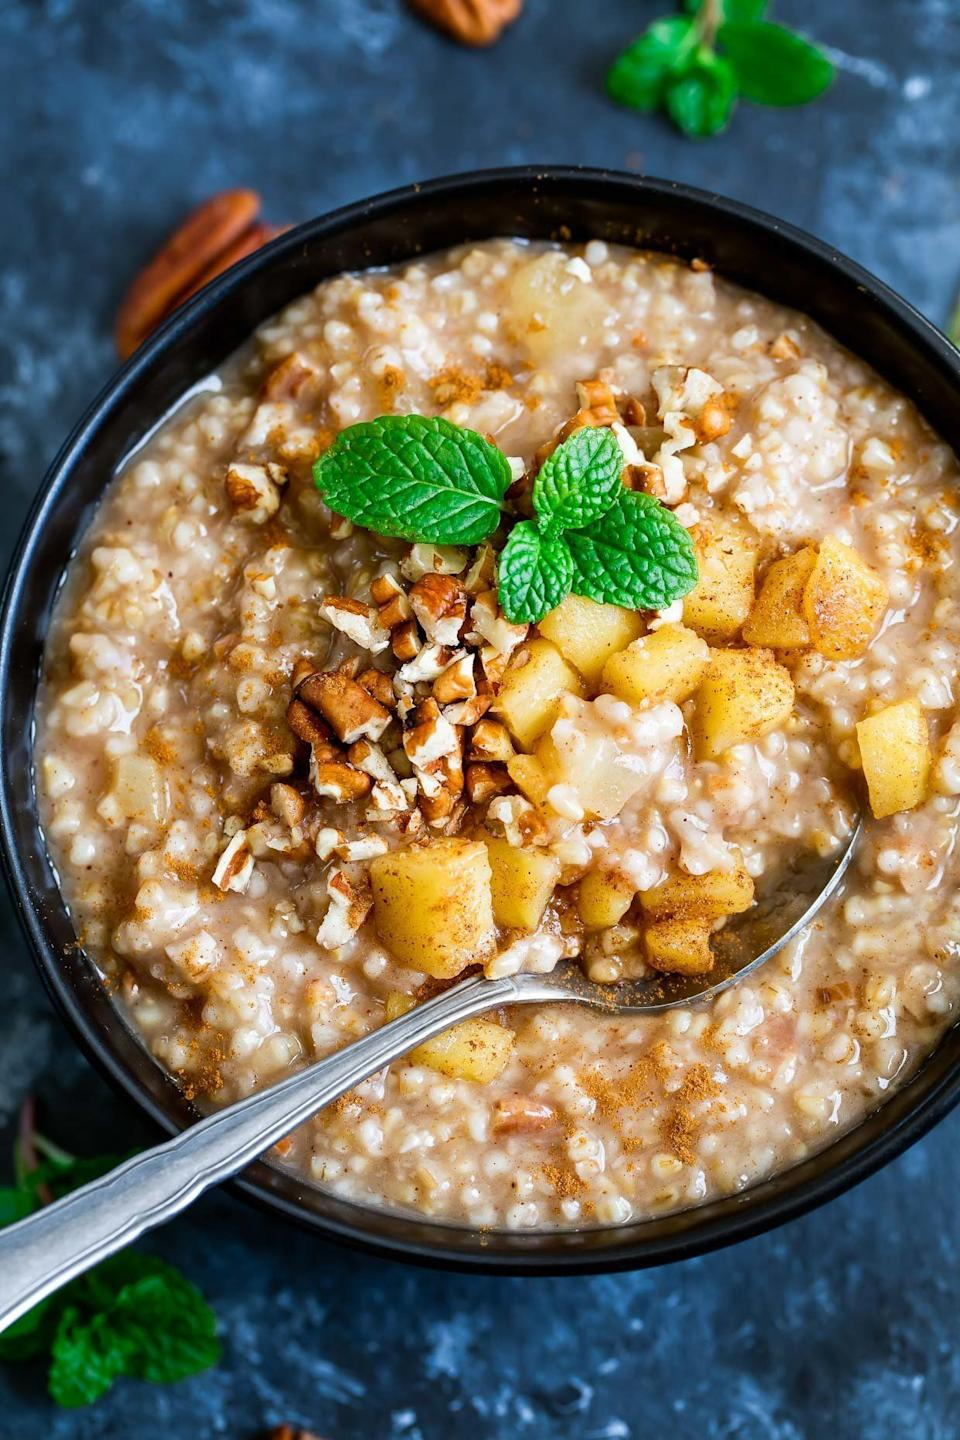 "<strong>Get the <a href=""https://peasandcrayons.com/2018/01/instant-pot-apple-cinnamon-oatmeal.html"" rel=""nofollow noopener"" target=""_blank"" data-ylk=""slk:Instant Pot Apple Cinnamon Oatmeal"" class=""link rapid-noclick-resp"">Instant Pot Apple Cinnamon Oatmeal</a> recipe from Peas and Crayons.</strong>"